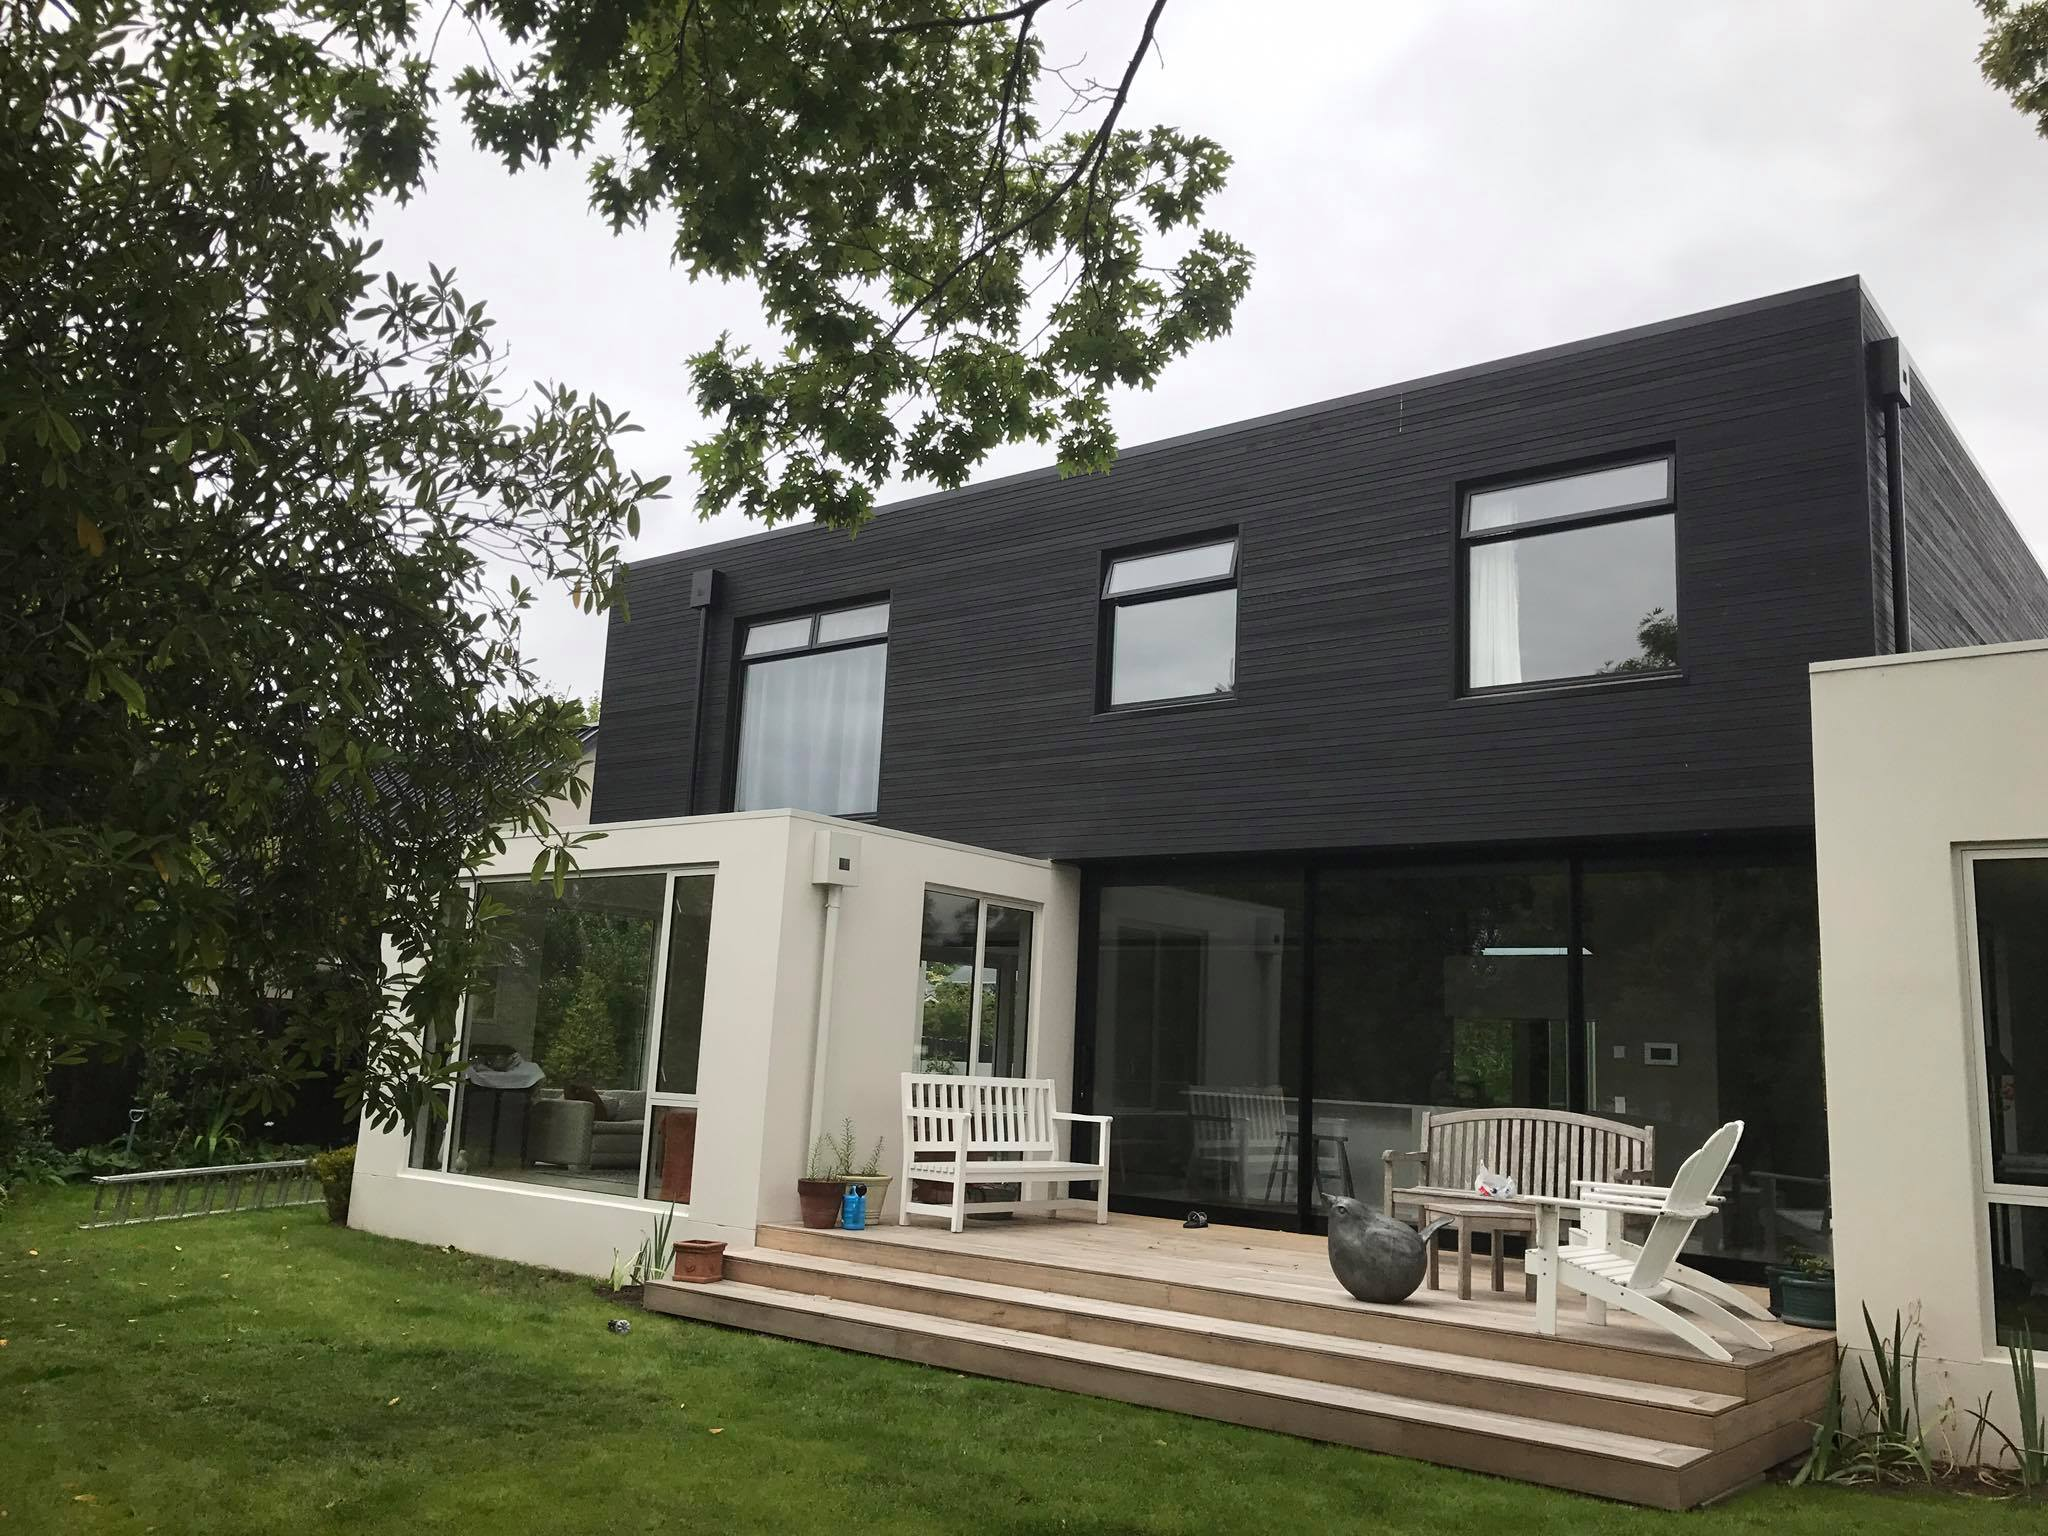 Ellis House, an architectural home in Canterbury built by the team at H3 Construction